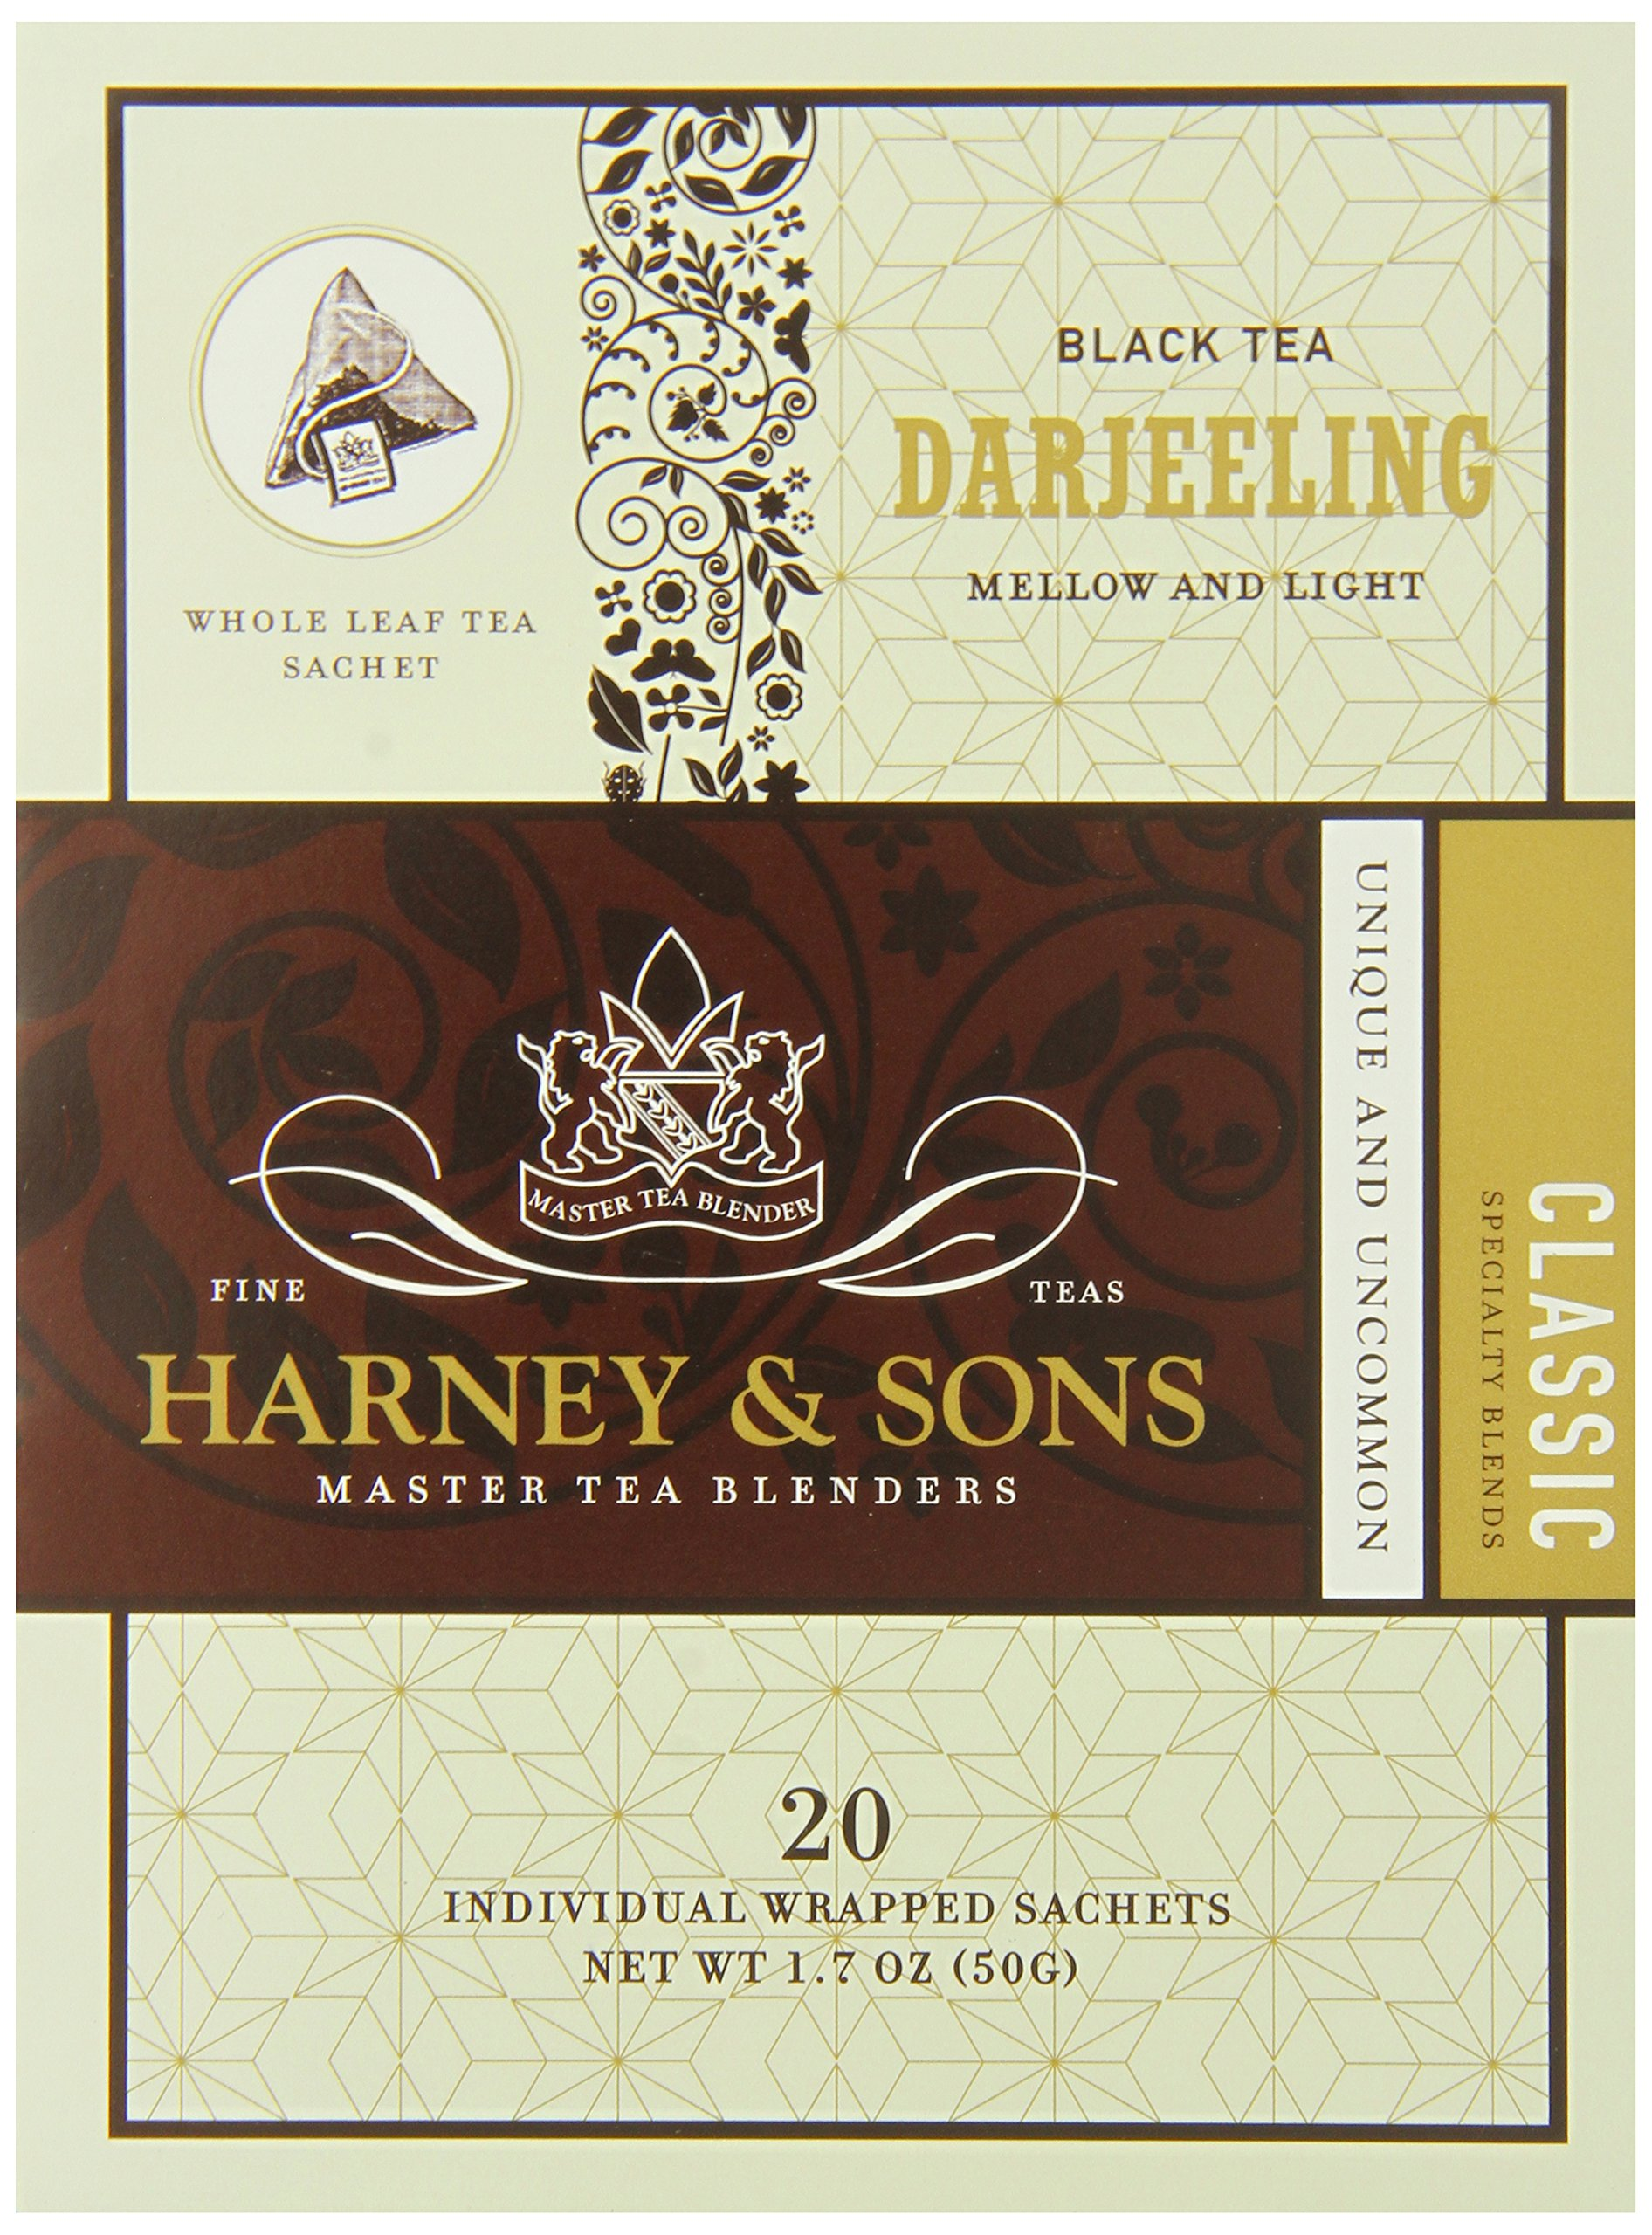 Harney & Sons Black Tea, Darjeeling, 20 Sachets (Pack of 6) by Harney and Sons